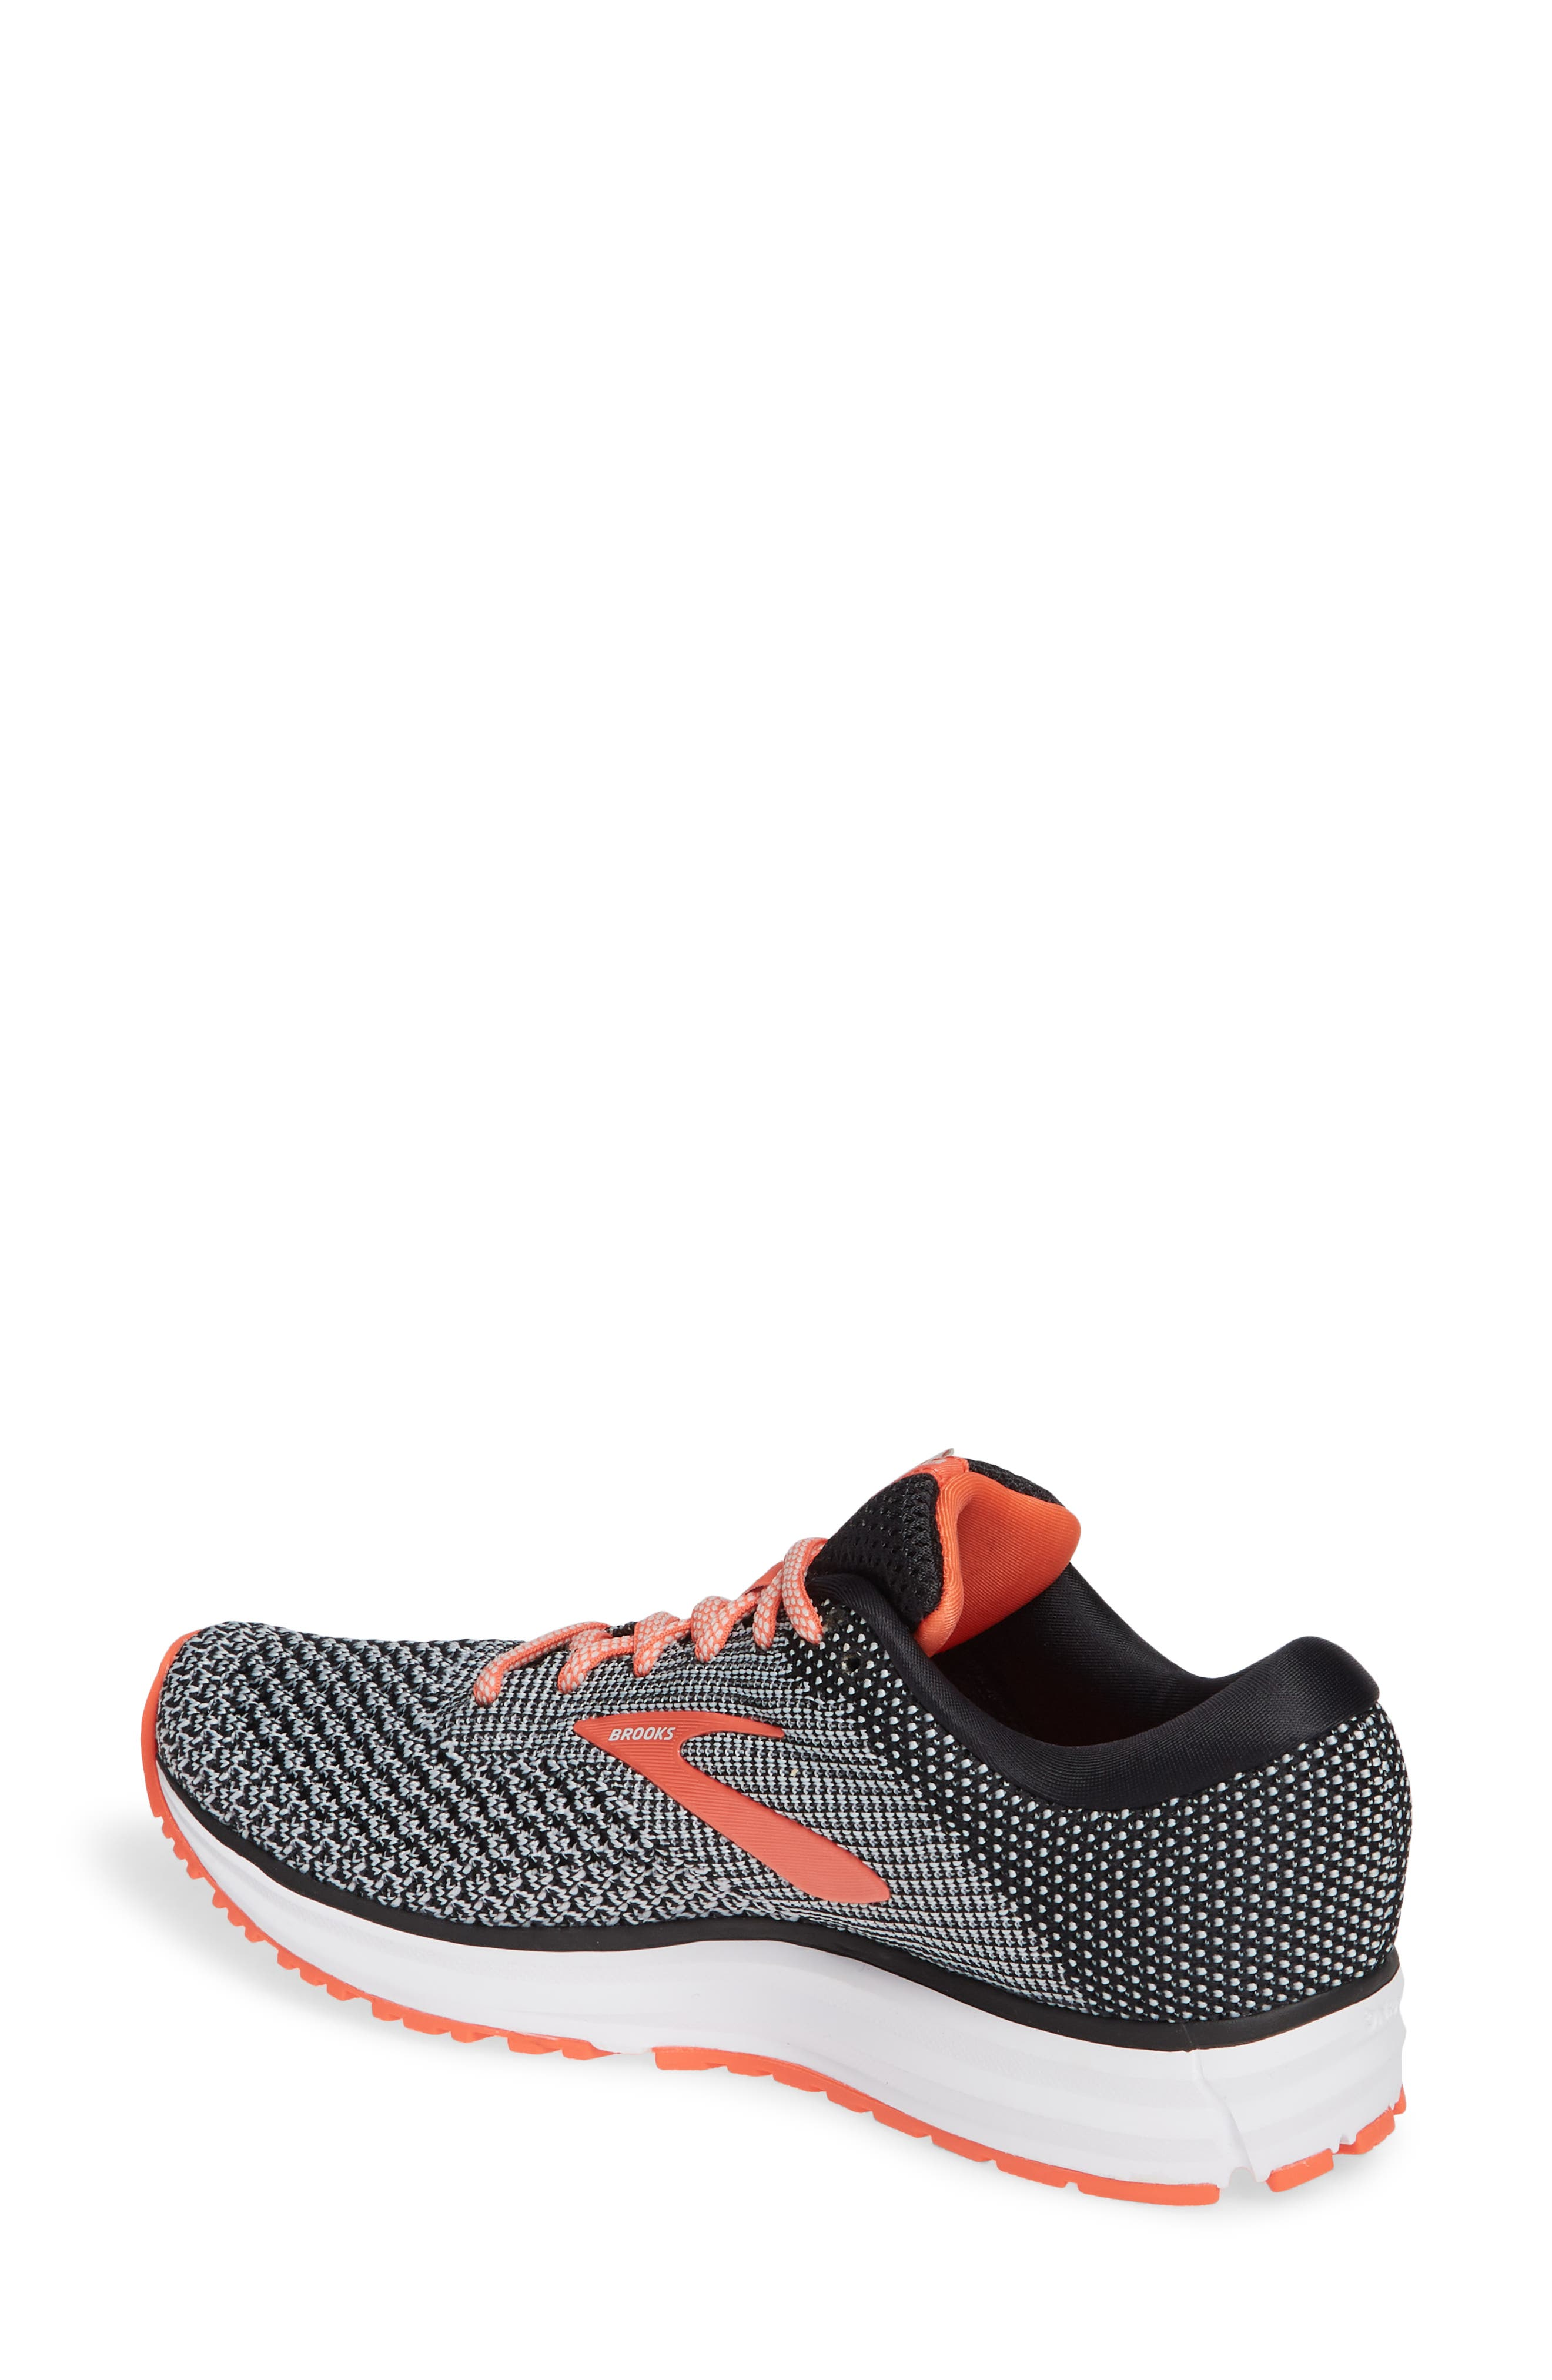 Revel 2 Running Shoe,                             Alternate thumbnail 2, color,                             BLACK/ LIGHT GREY/ CORAL